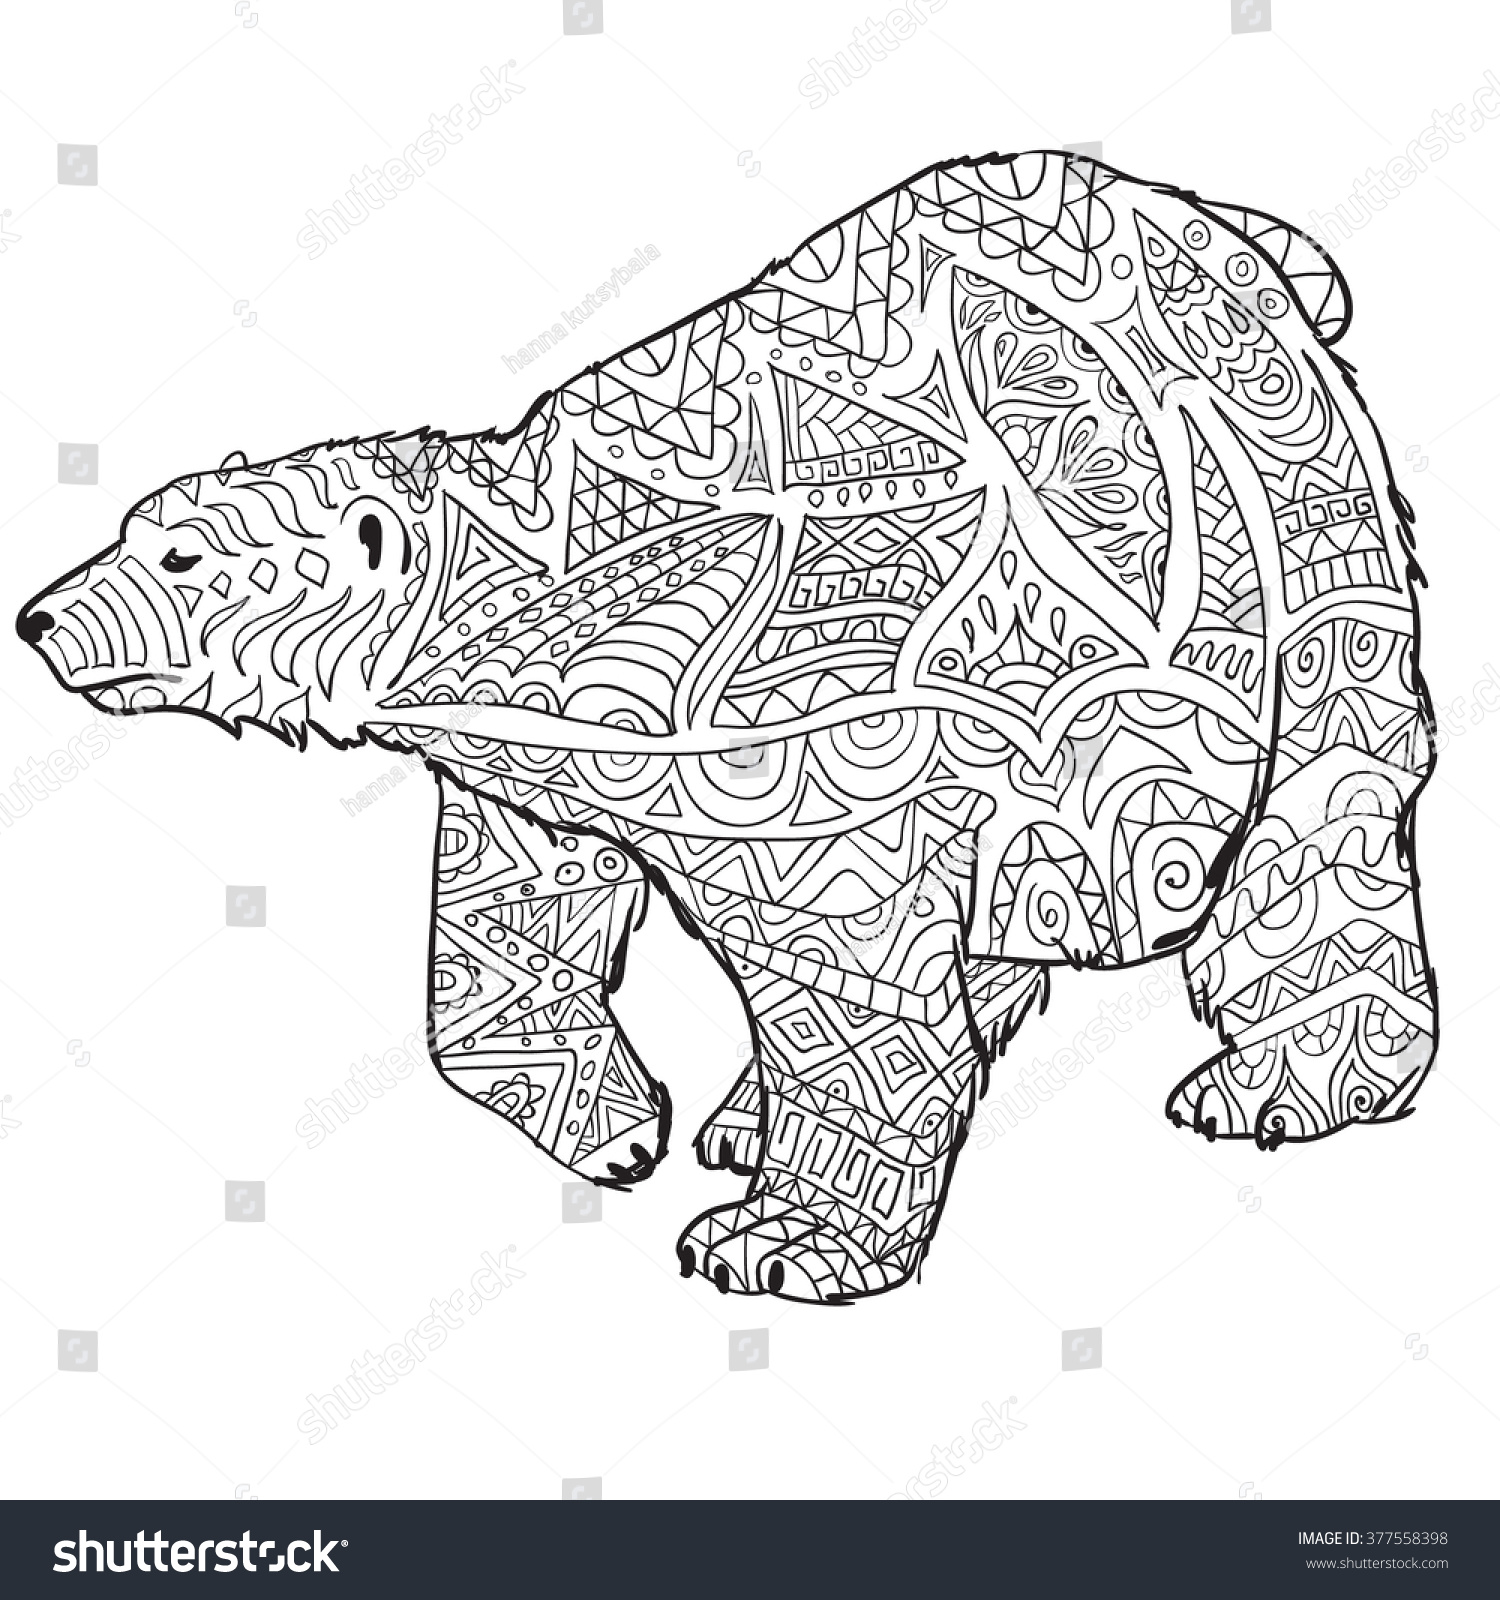 hand drawn coloring pages with polar bear zentangle illustration for adult anti stress coloring books